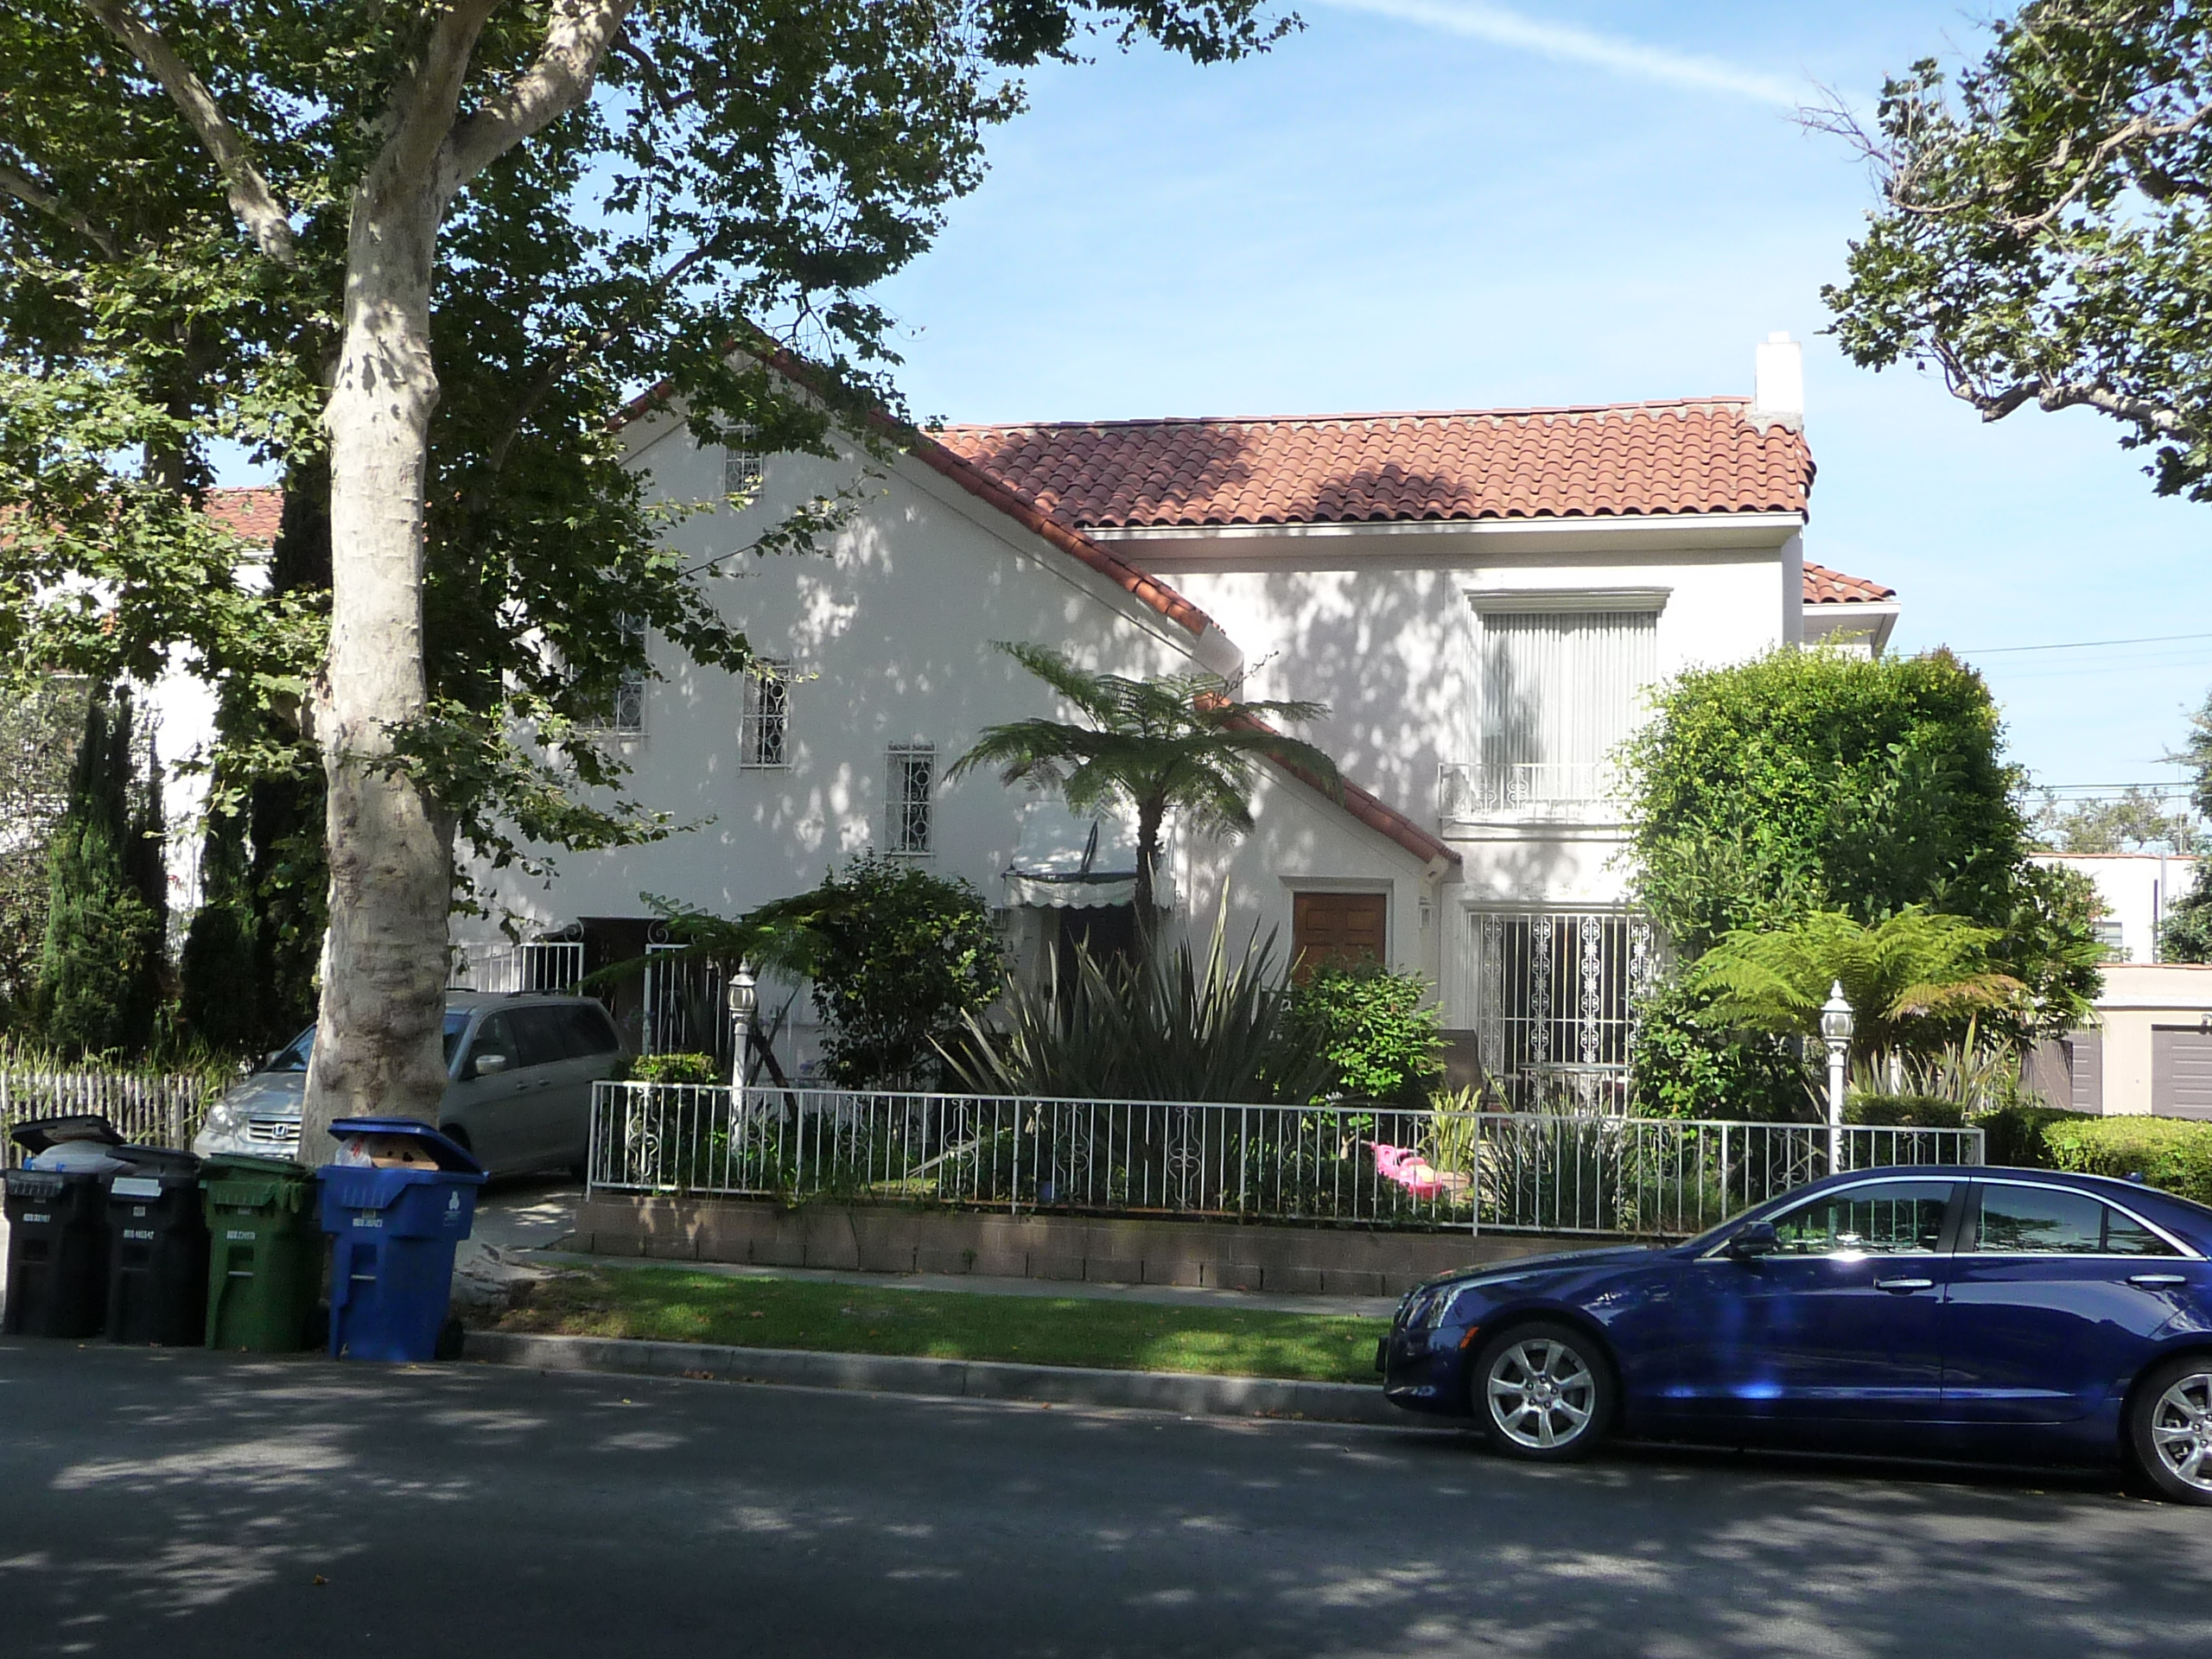 251 S MANSFIELD AVE - PHOTO